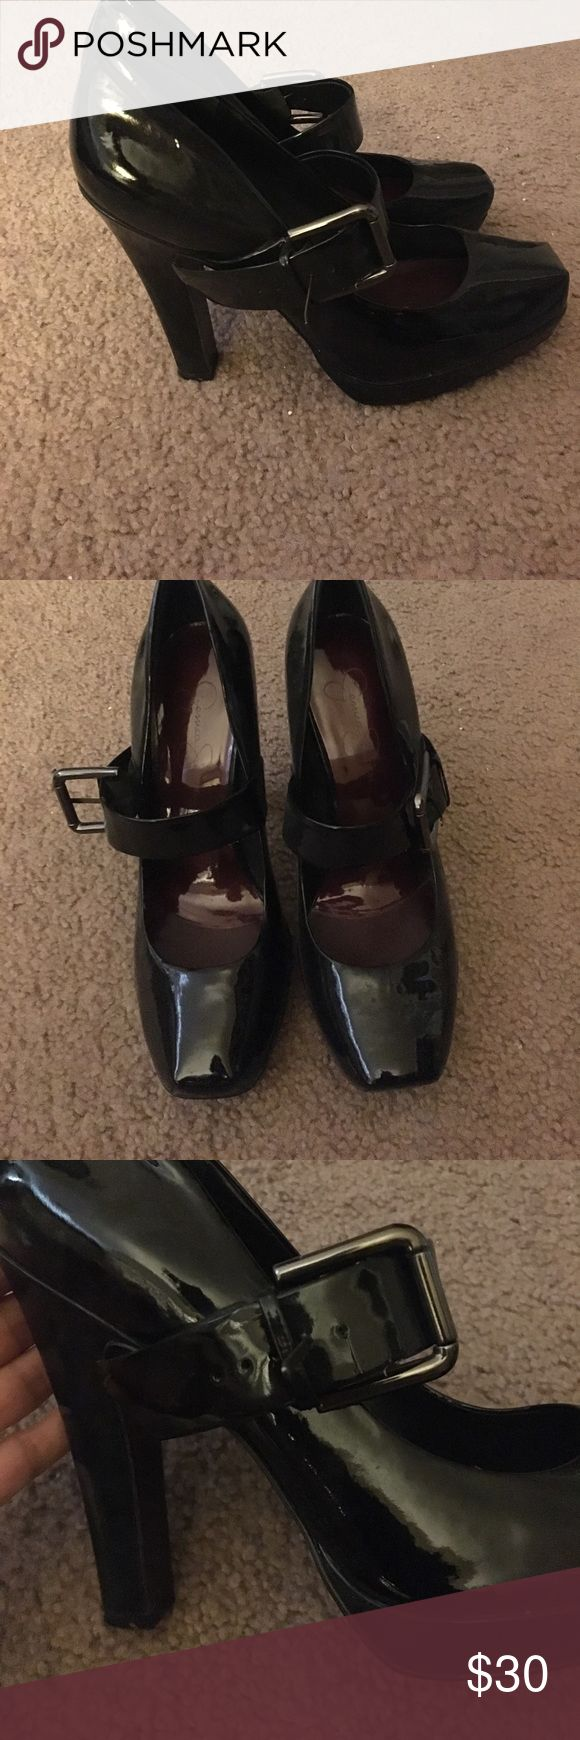 Jessica's Simpson high heels! Size 8' I've wore these a few times for only a couple of hours! I great condition! My feet has shrunk. These beautiful heels no long fit me! Shoot me an offer if you don't like what I put a price on. Jessica Simpson Shoes Heels